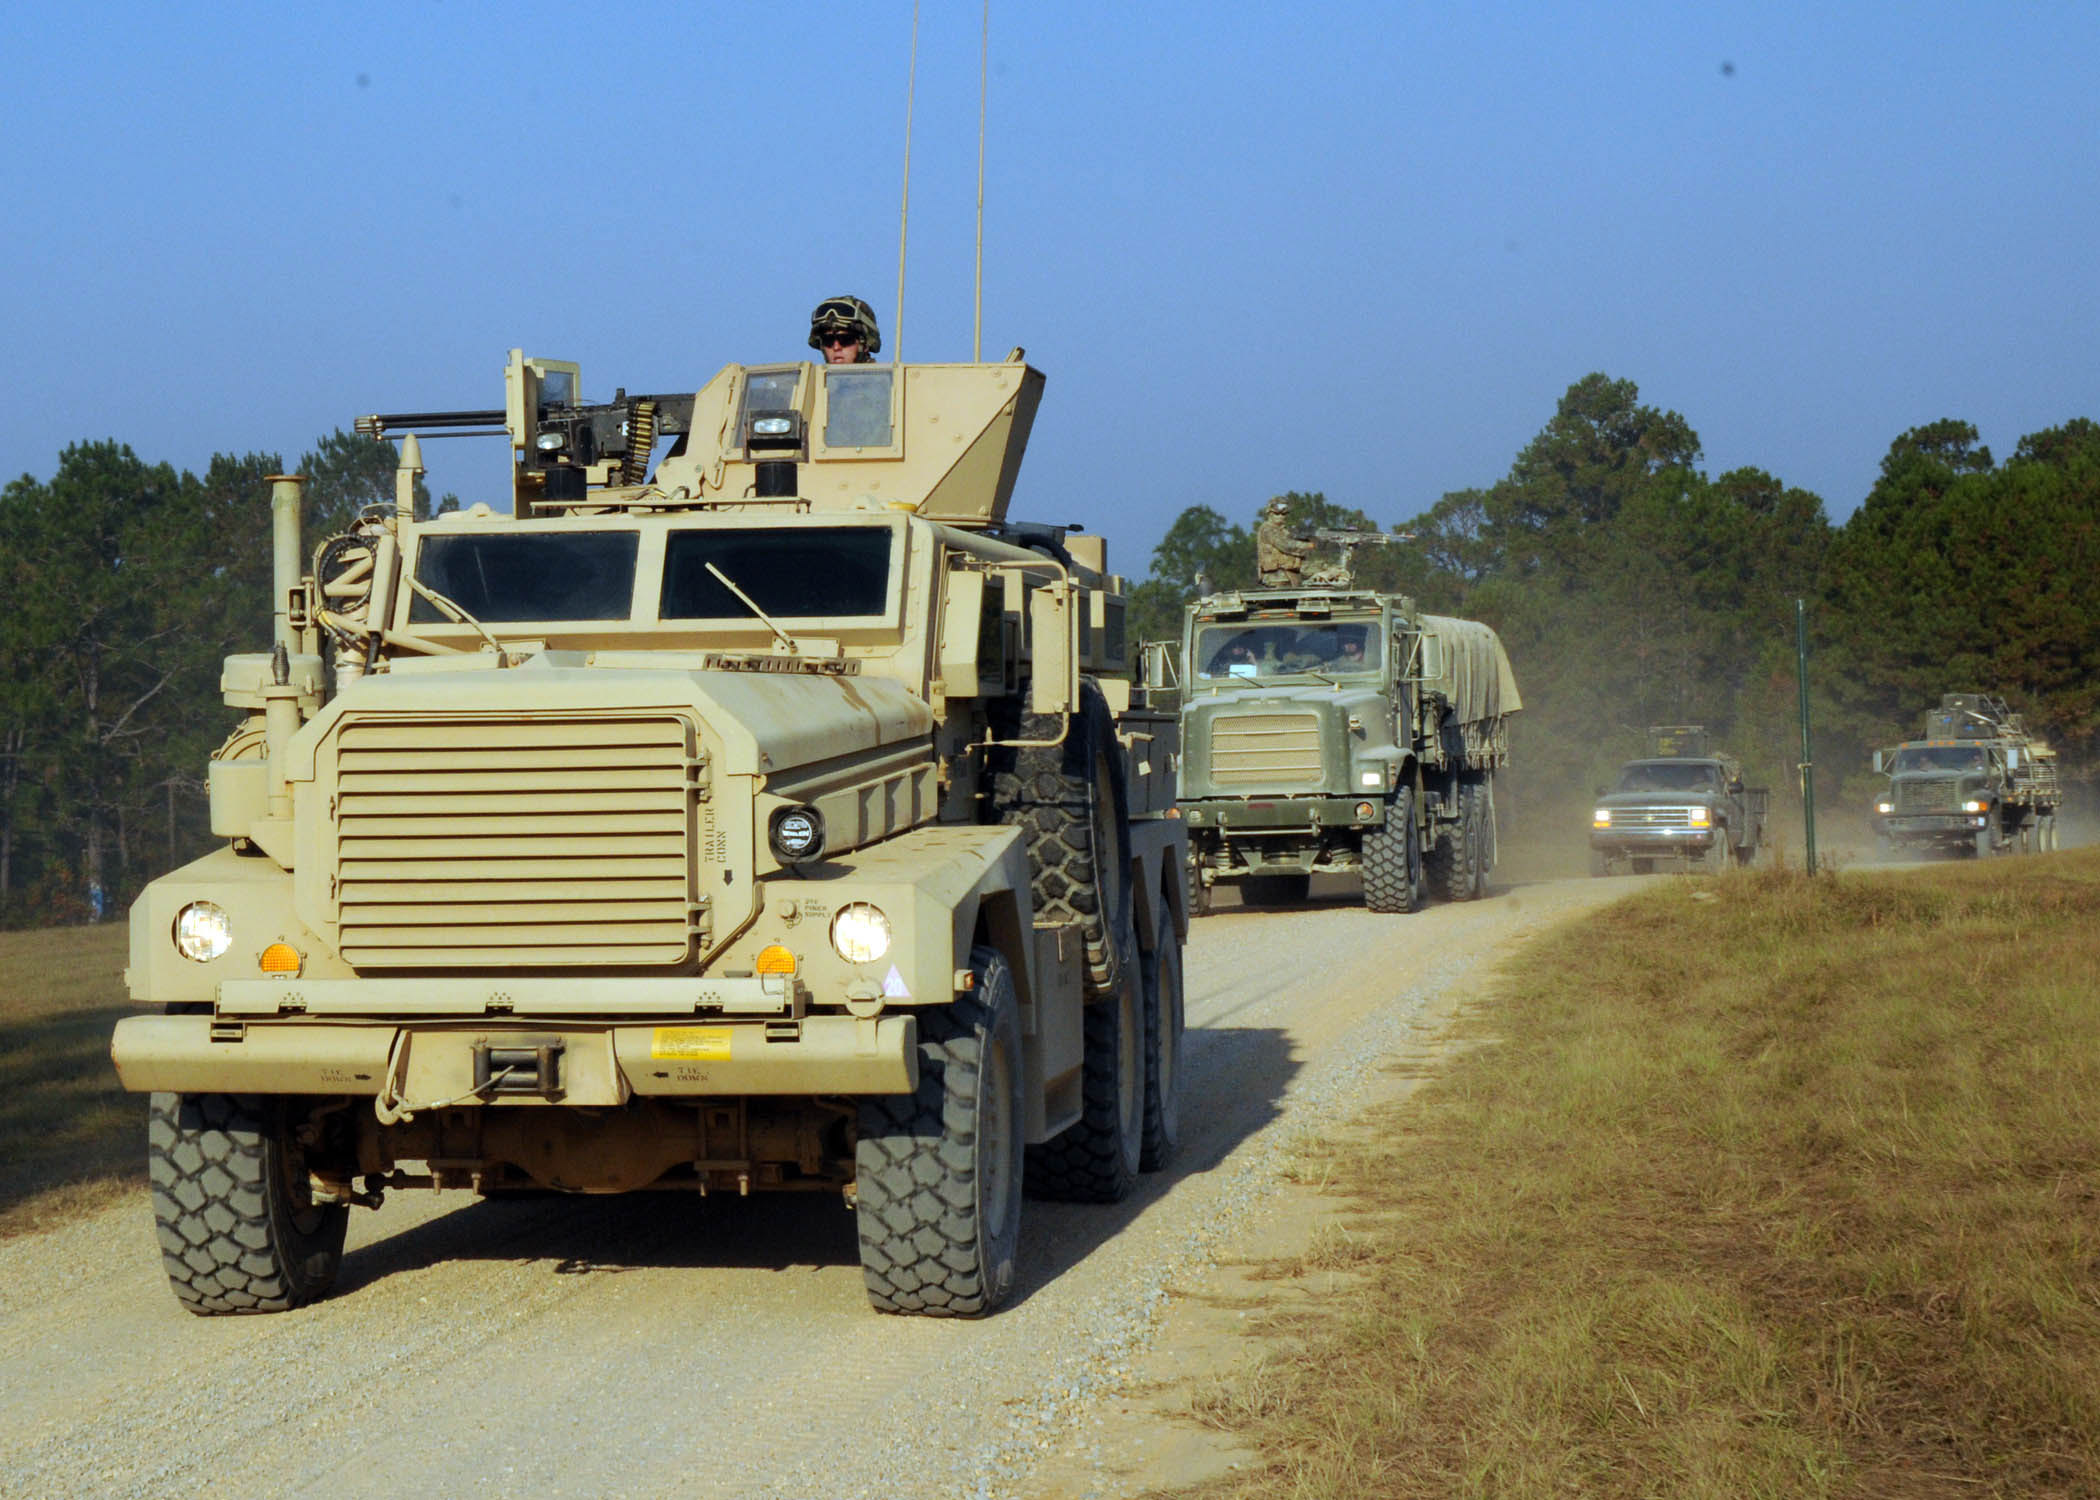 detail of Naval Mobile Construction Battalion (NMCB) 74 arrive at their camp site. NMCB-74 is conducting a field training exercise before deploying later this